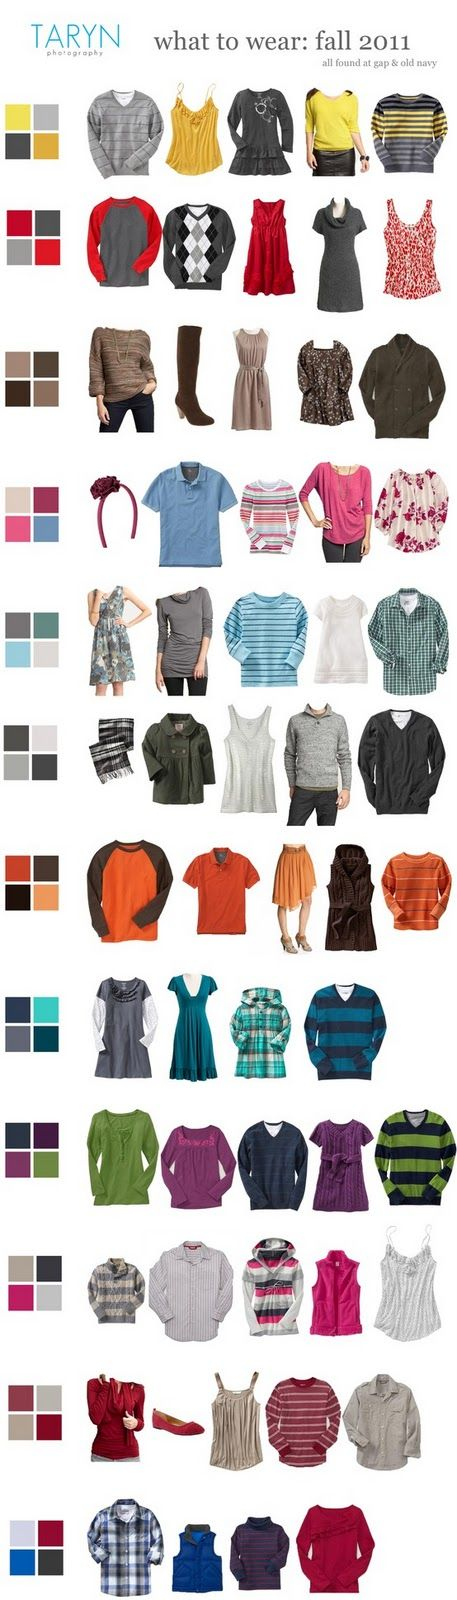 Hello, You've Reached the Horvath's: Family Portraits {What to Wear?}